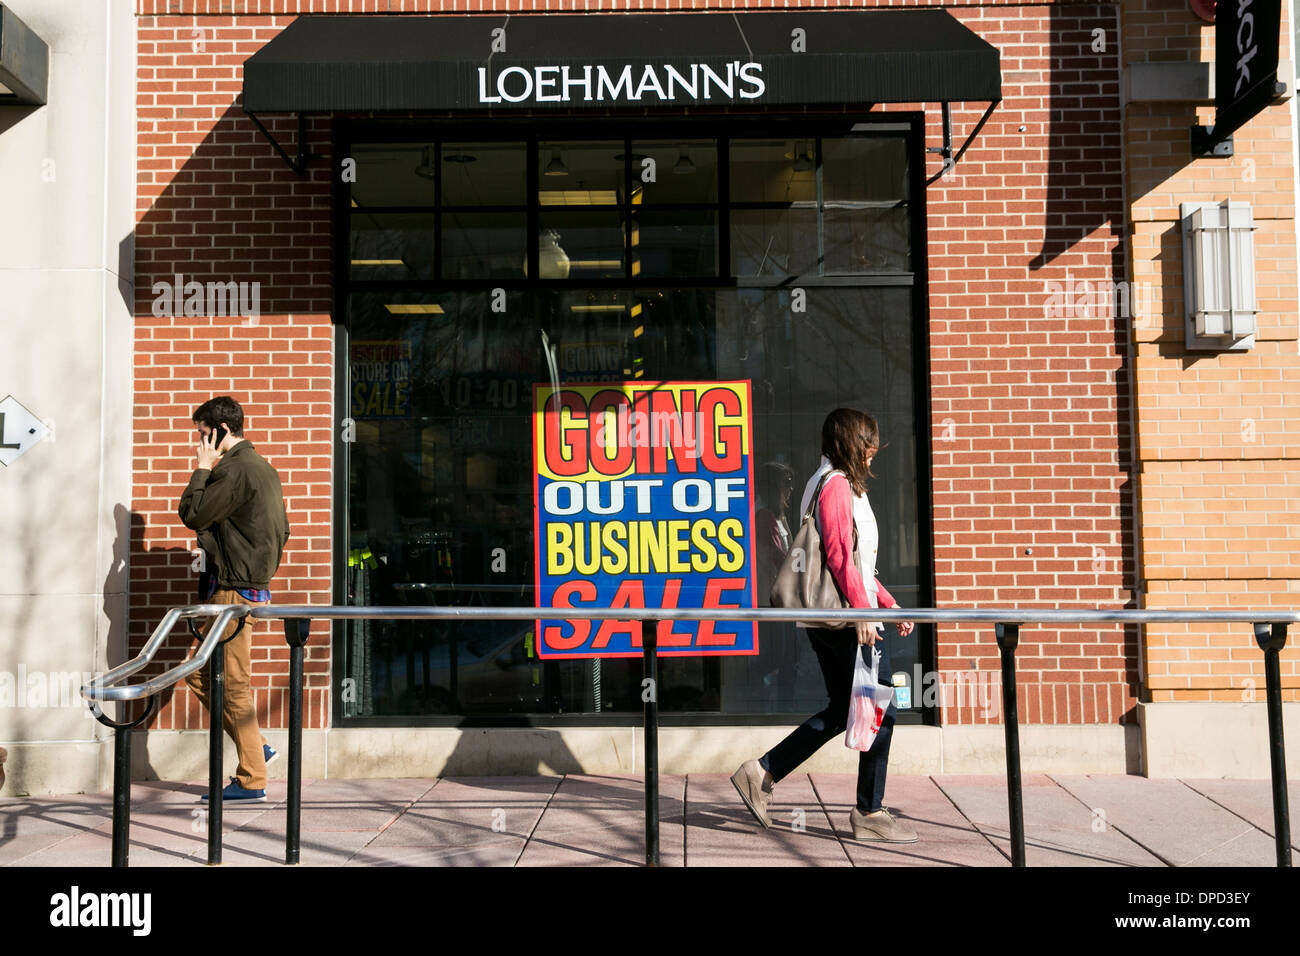 A Loehmann's discount retail store in Washington, DC in the process of going out of business.  - Stock Image